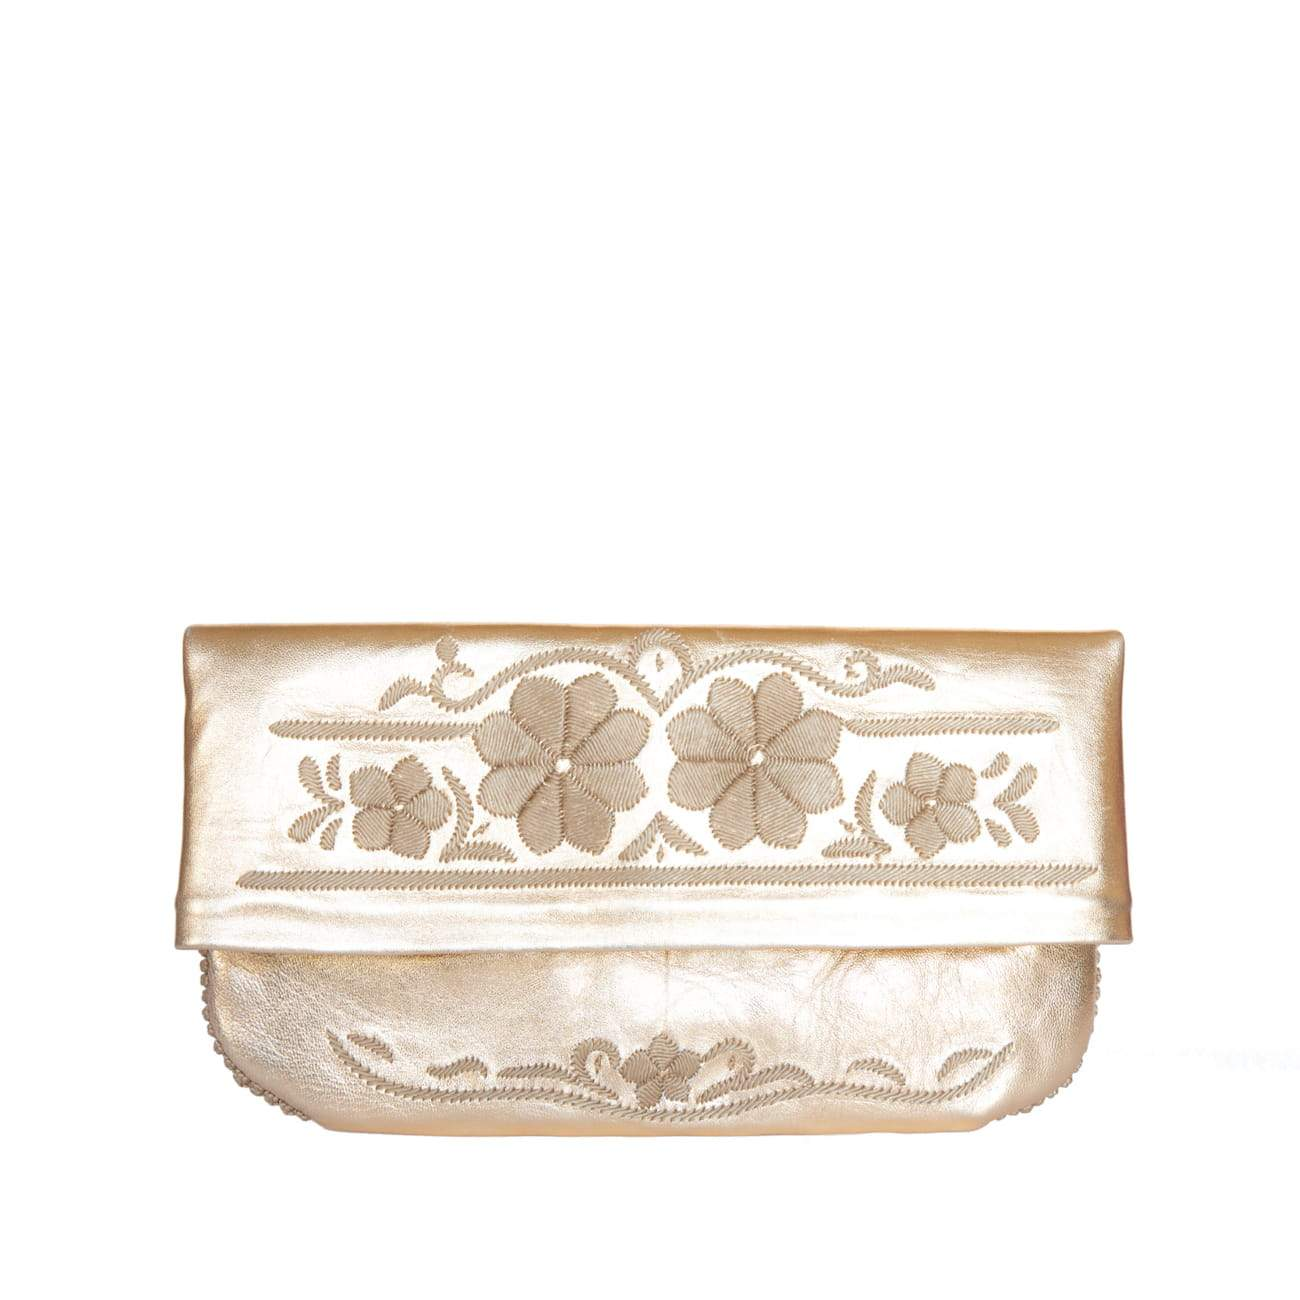 Floral Evening Clutch Bag in Gold, Beige from Abury